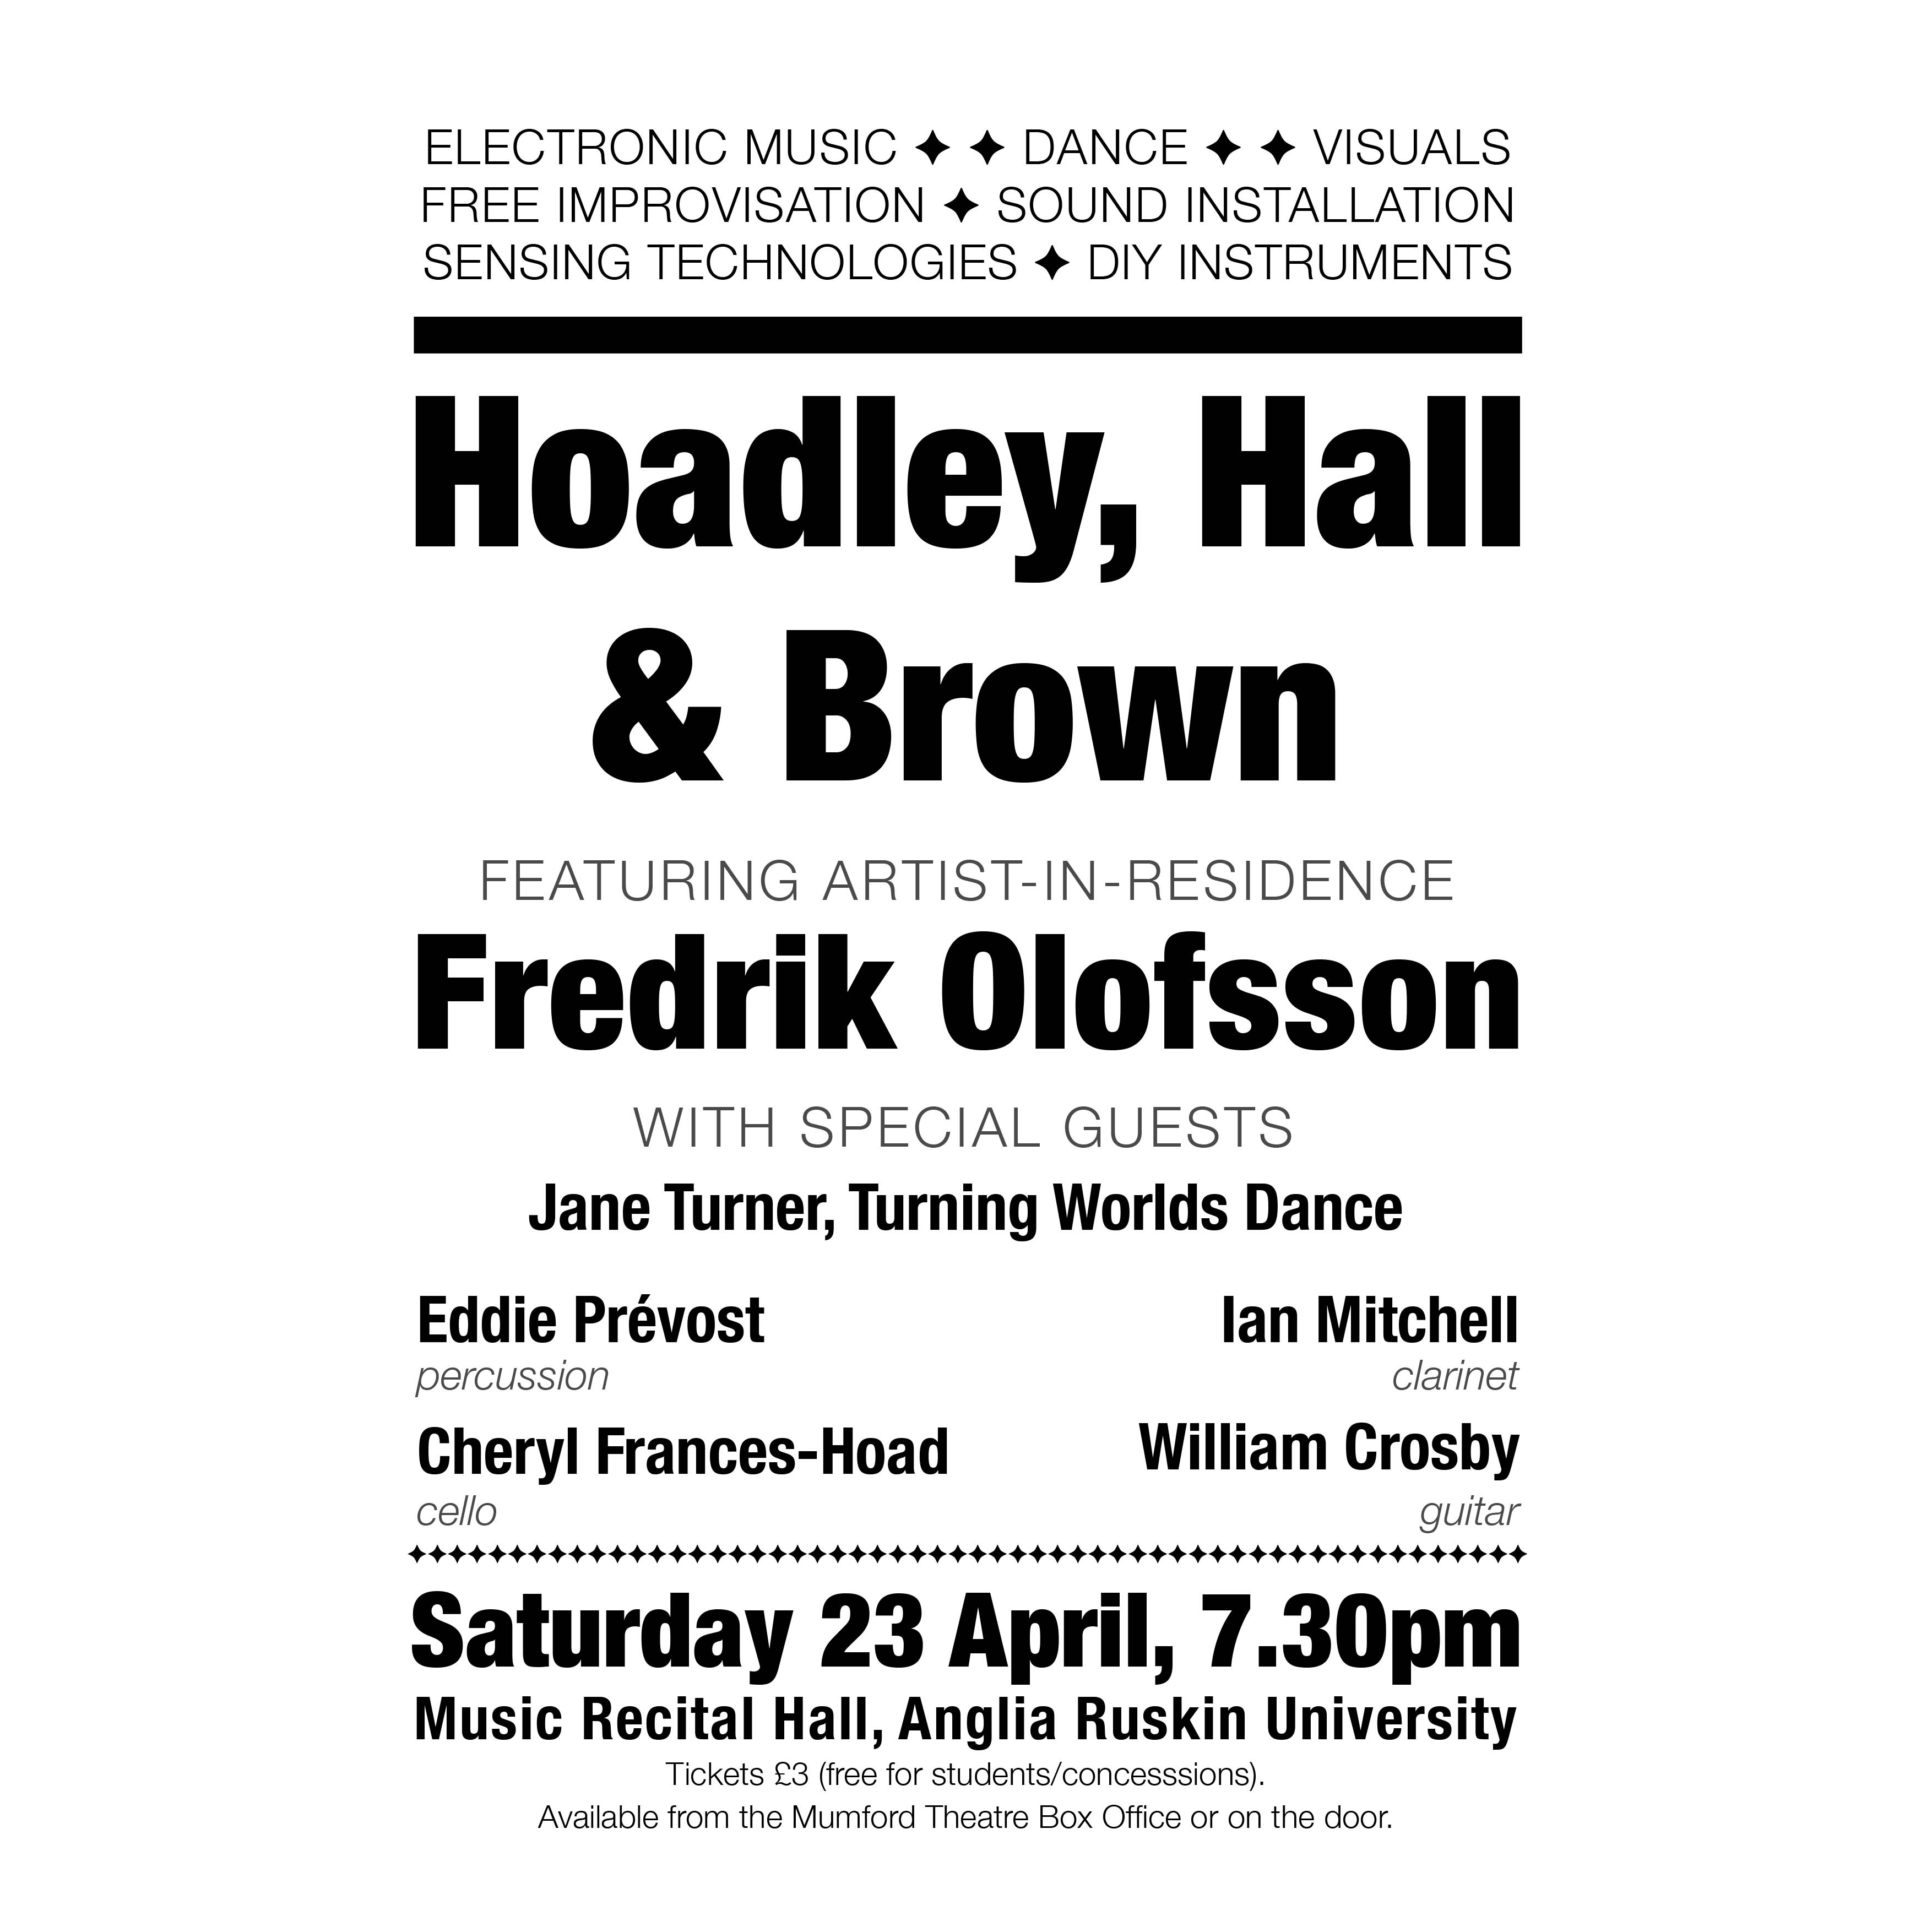 hoadley_hall_and_brown_poster